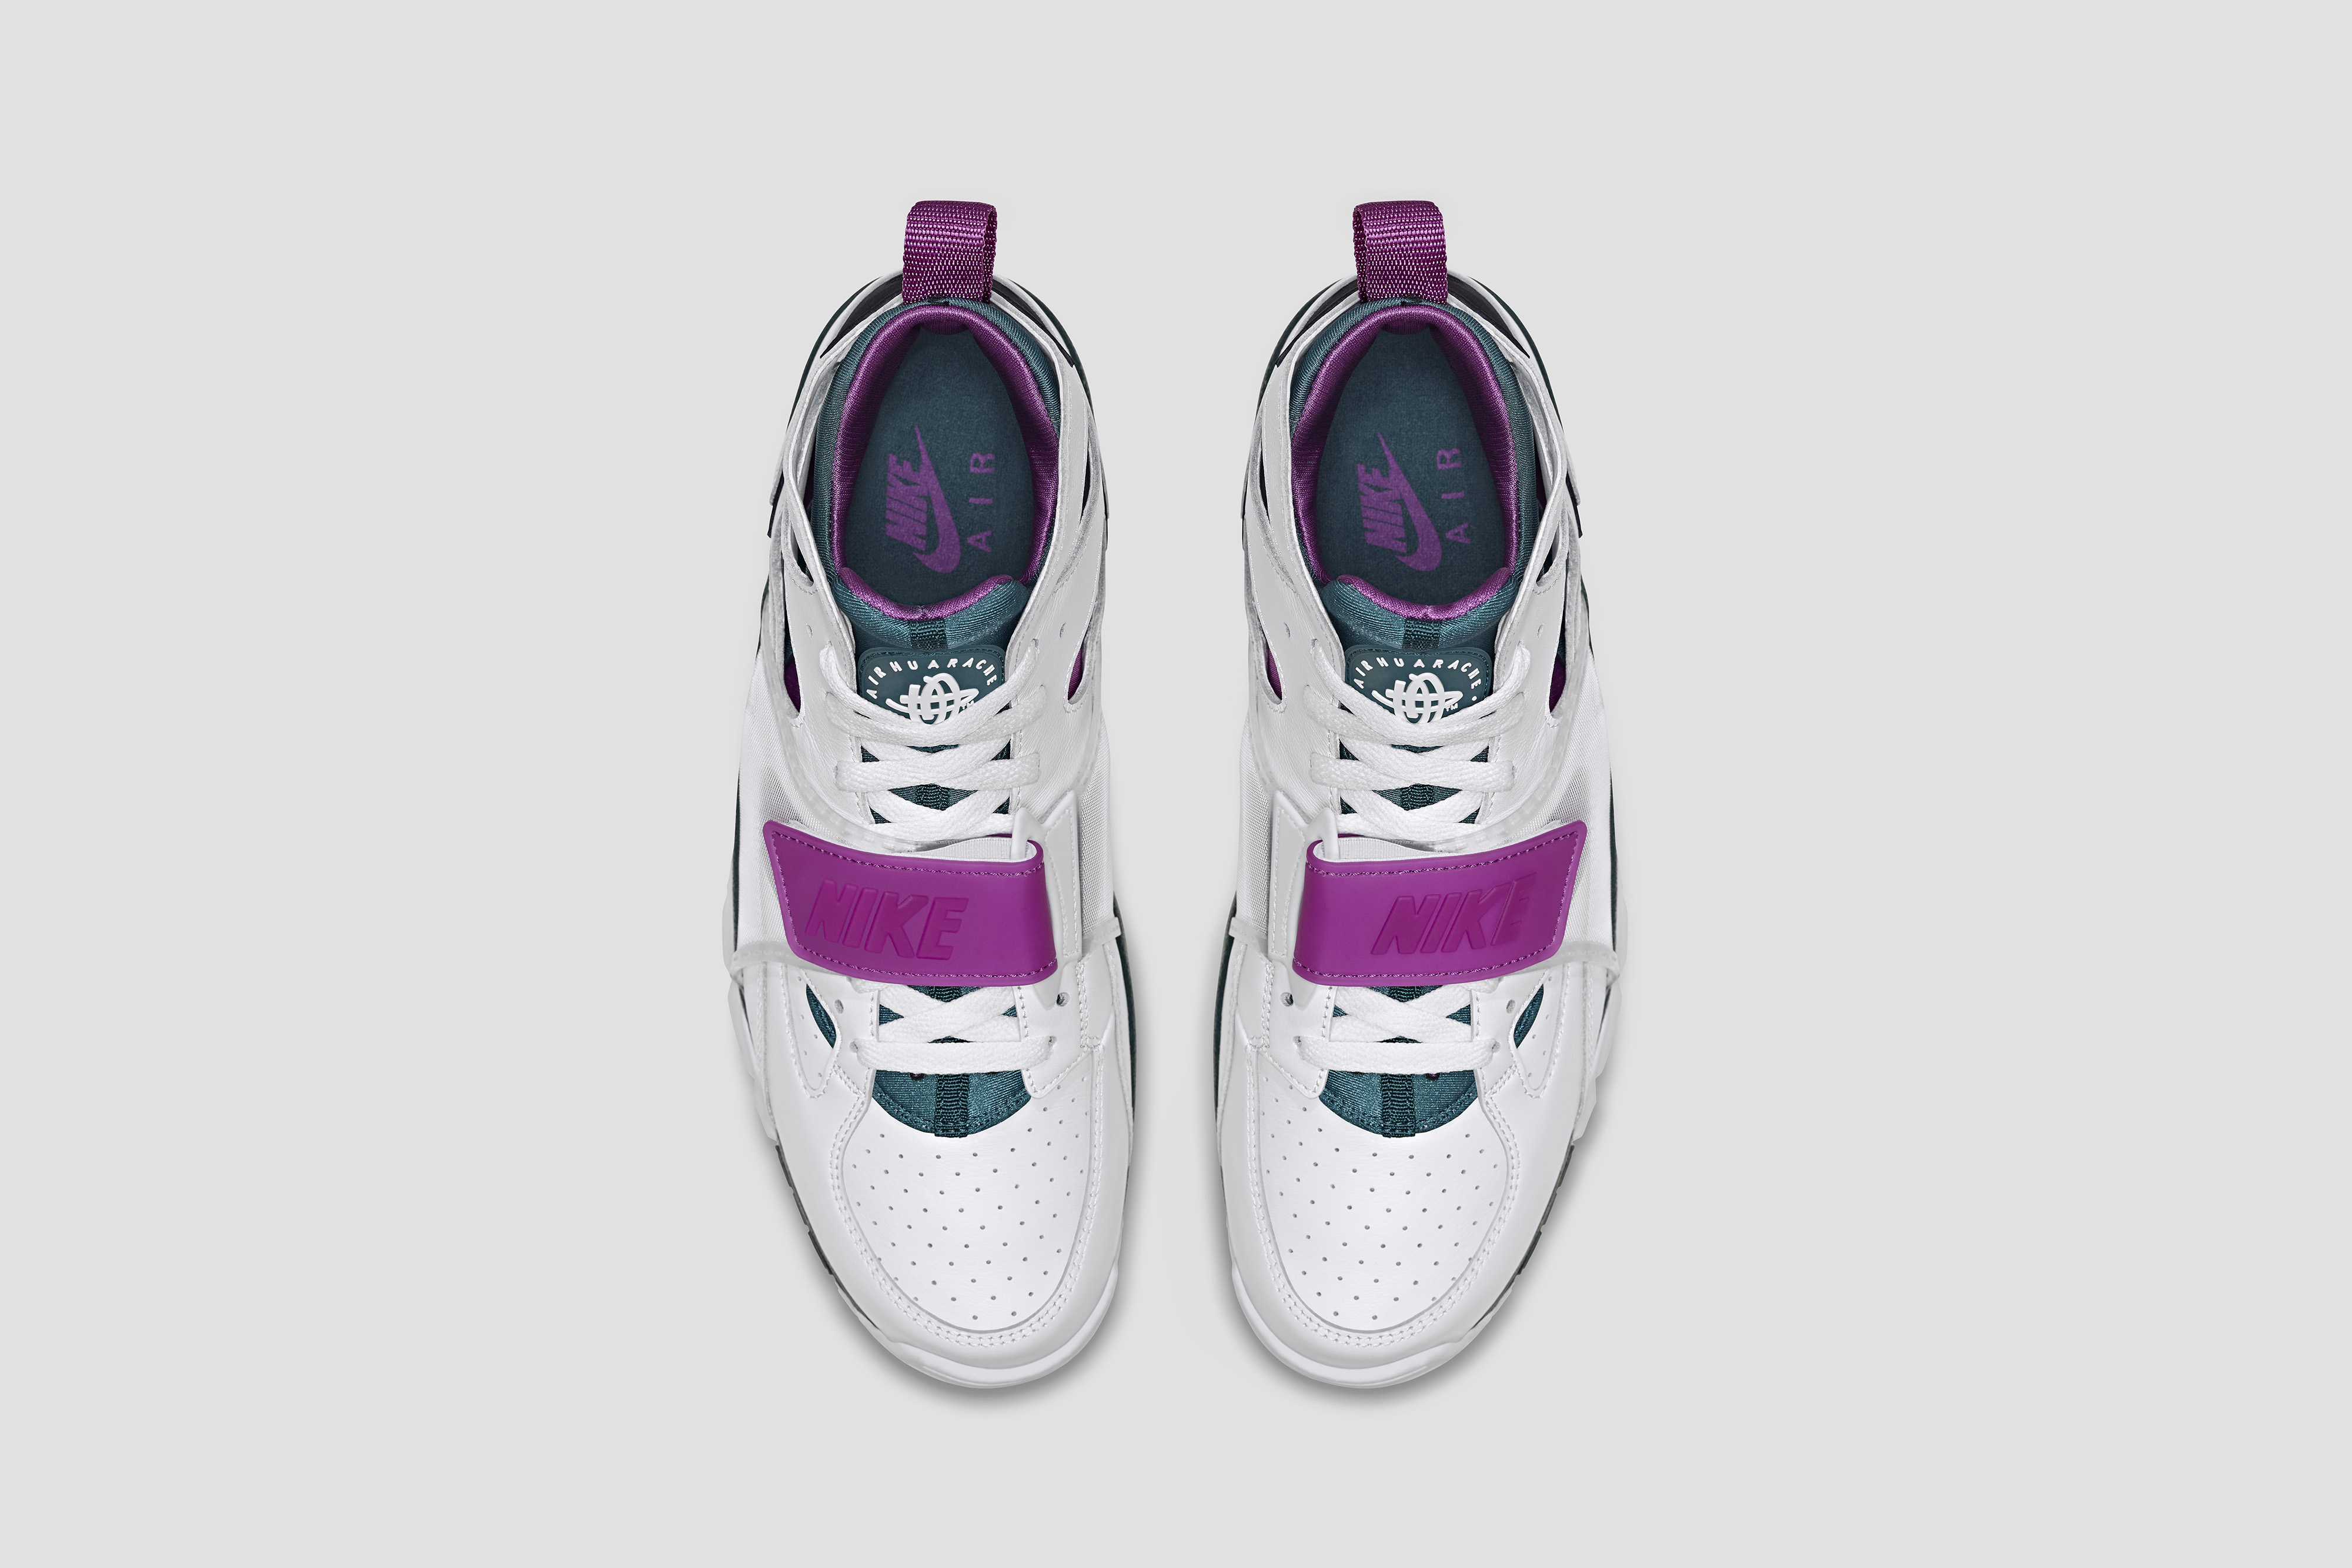 nike huarache purple green